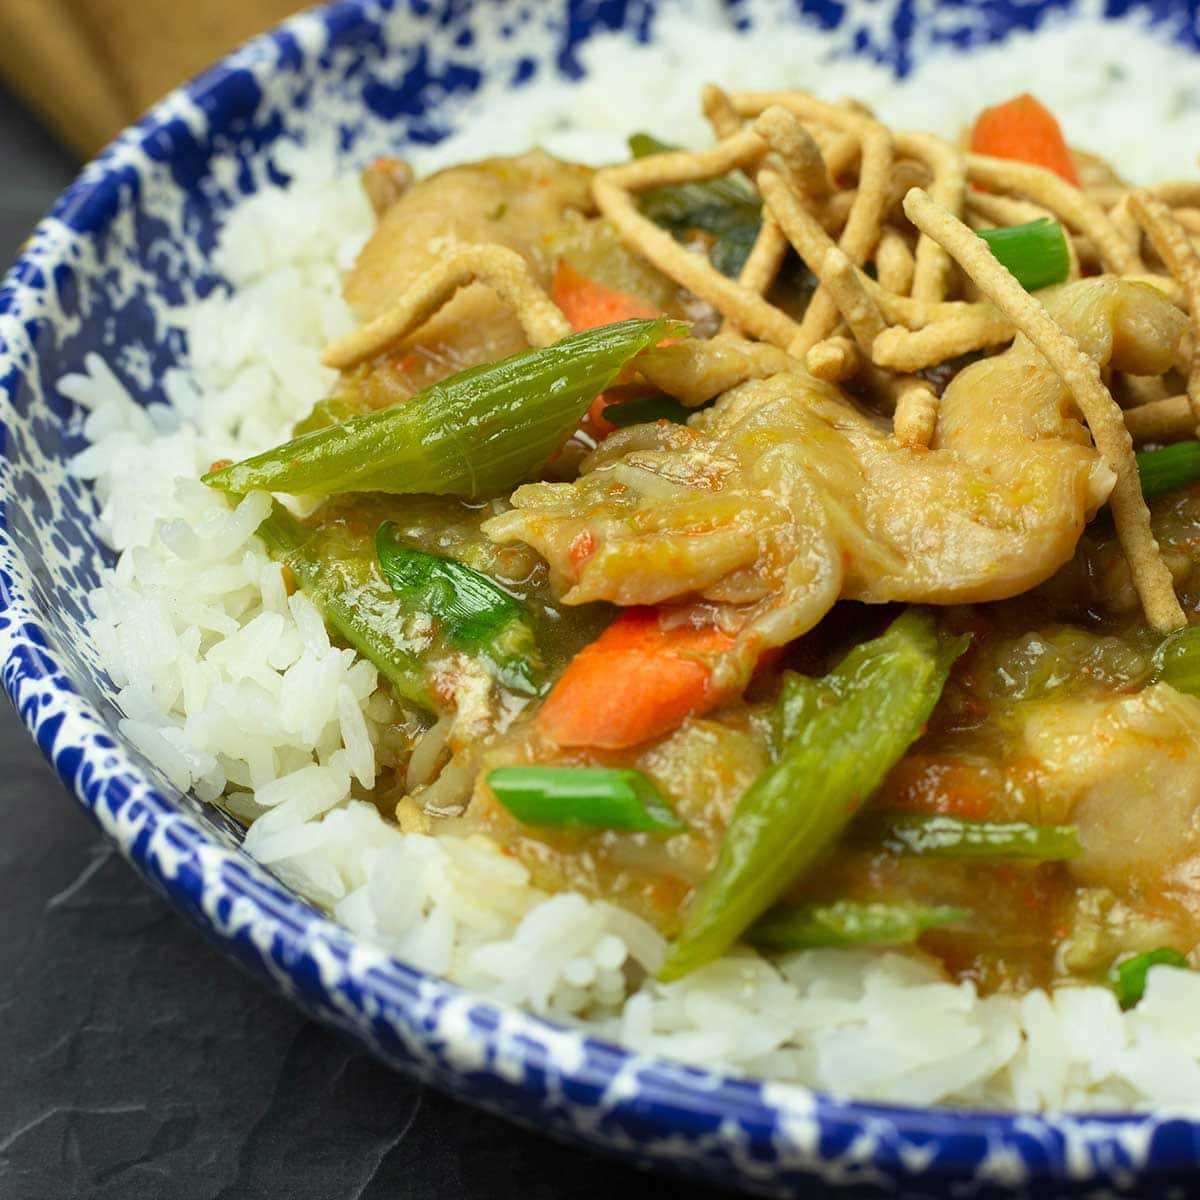 Chicken Chop Suey over rice in a blue and white bowl